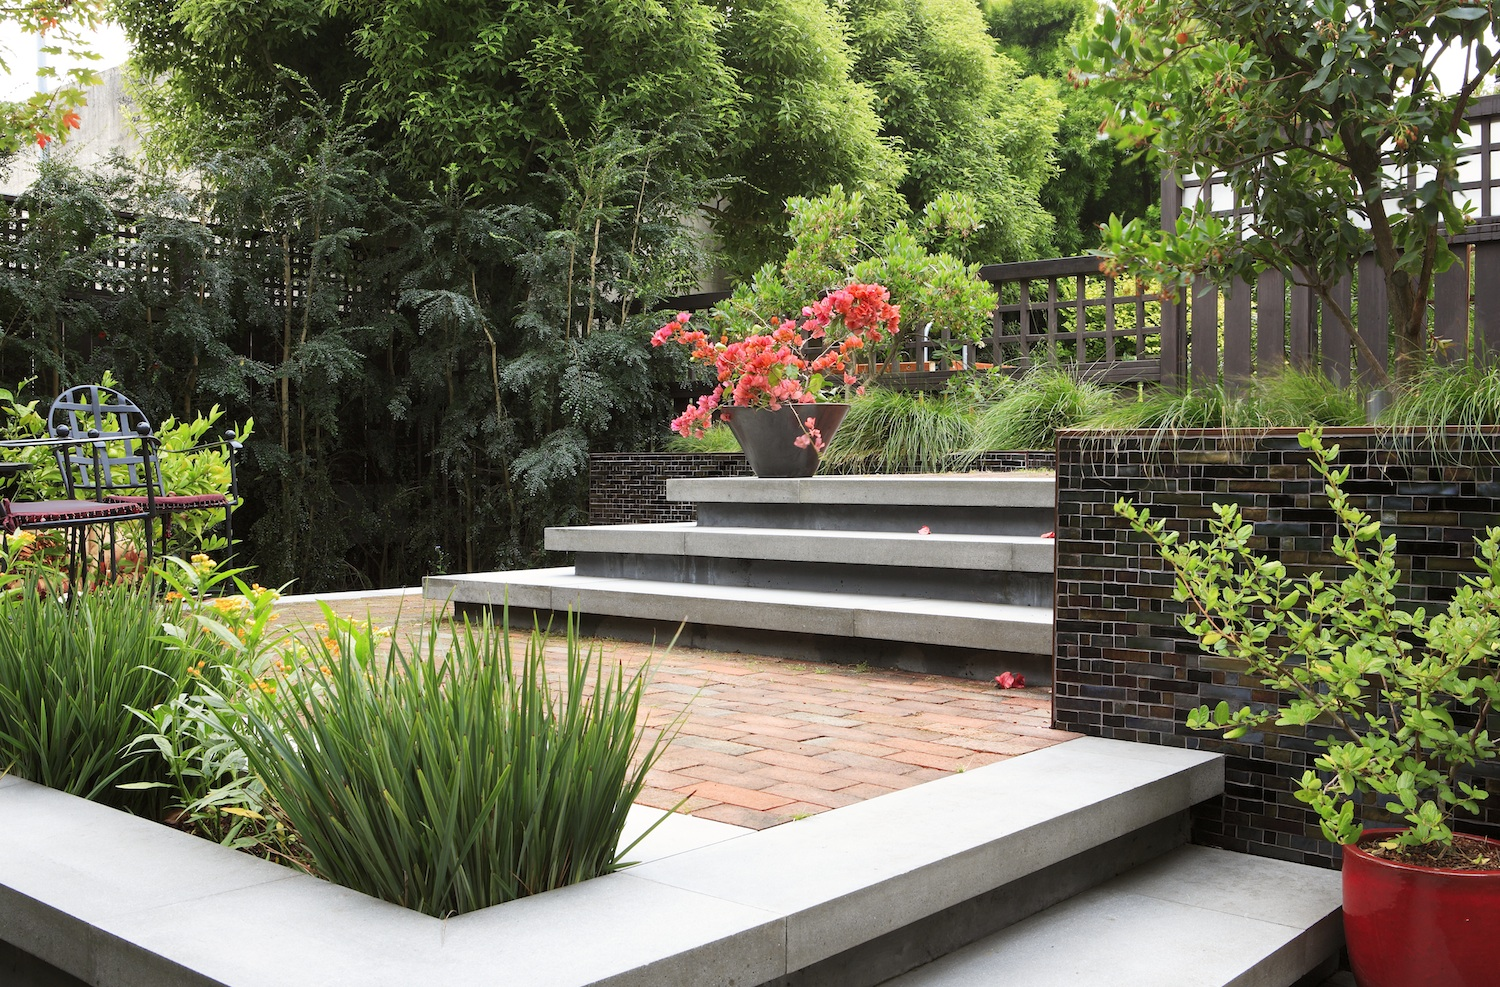 San francisco landscape architecture firms - The Emerging Garden By Arterra Landscape Architects Welcome San Francisco